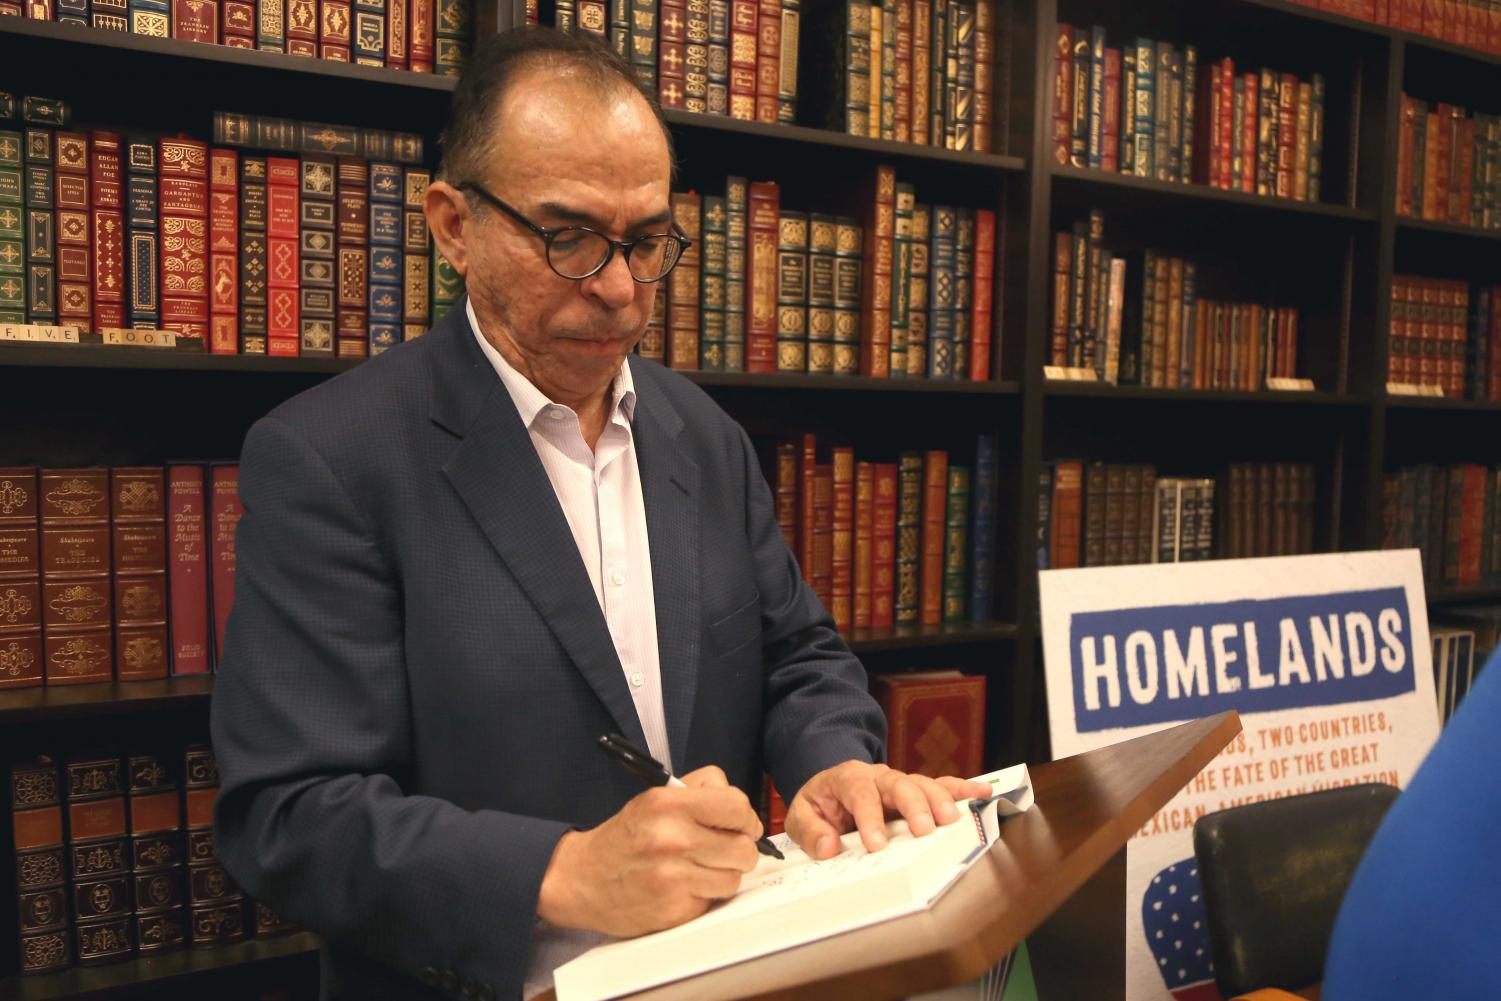 Corchado personalized some books for the attendees at the book signing at the Literarity Book on Wednesday, June 6.